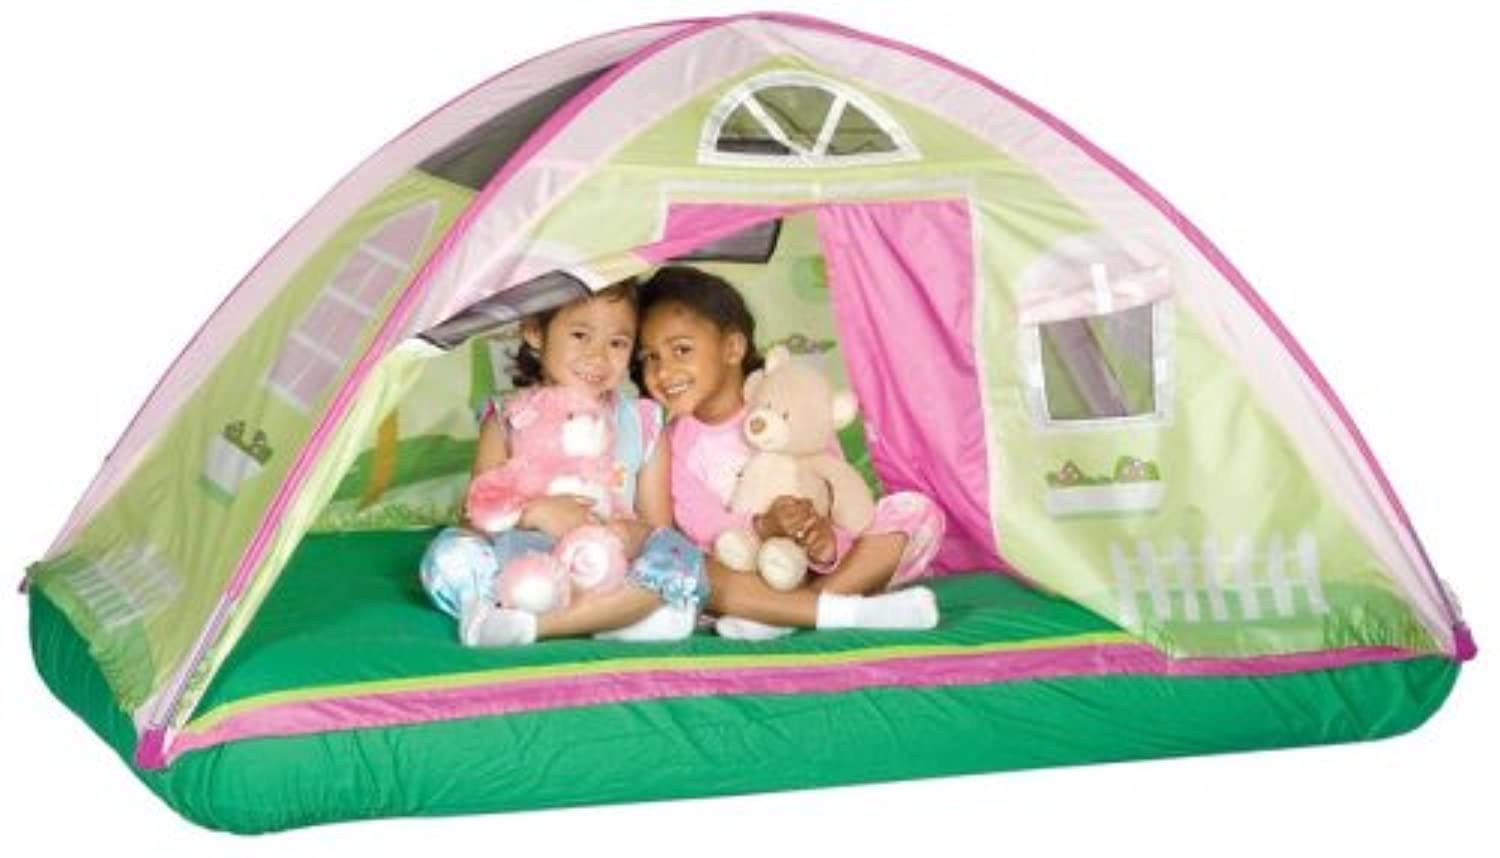 Pacific Play Tents CottageベッドテントプラスチックPlayhouseキット